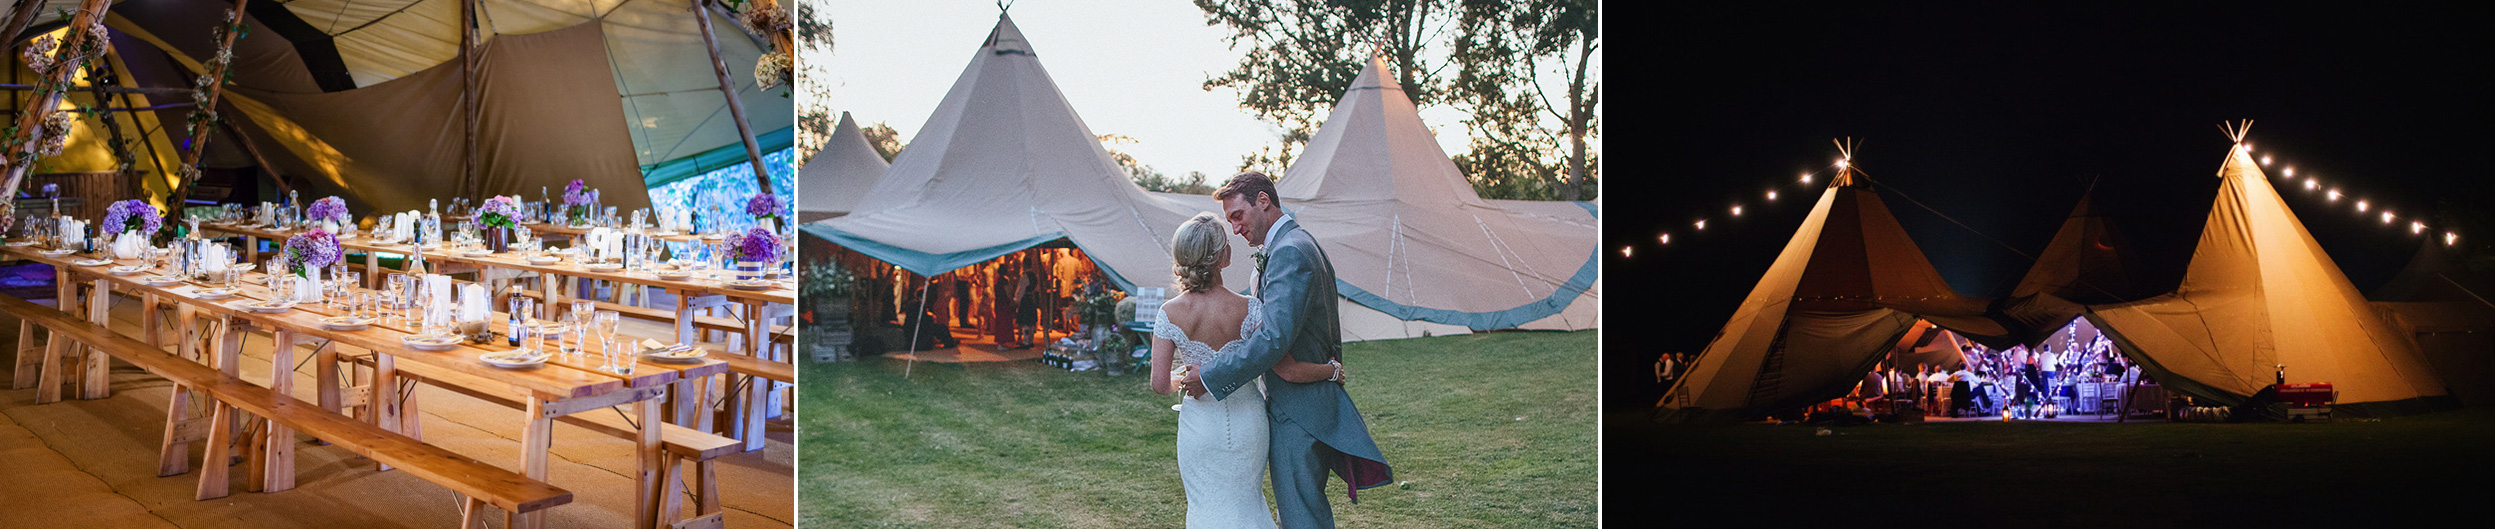 tipi-wedding-world-inspired-tents-open-weekend-helen-lisk-photography-coco-wedding-venues-1a